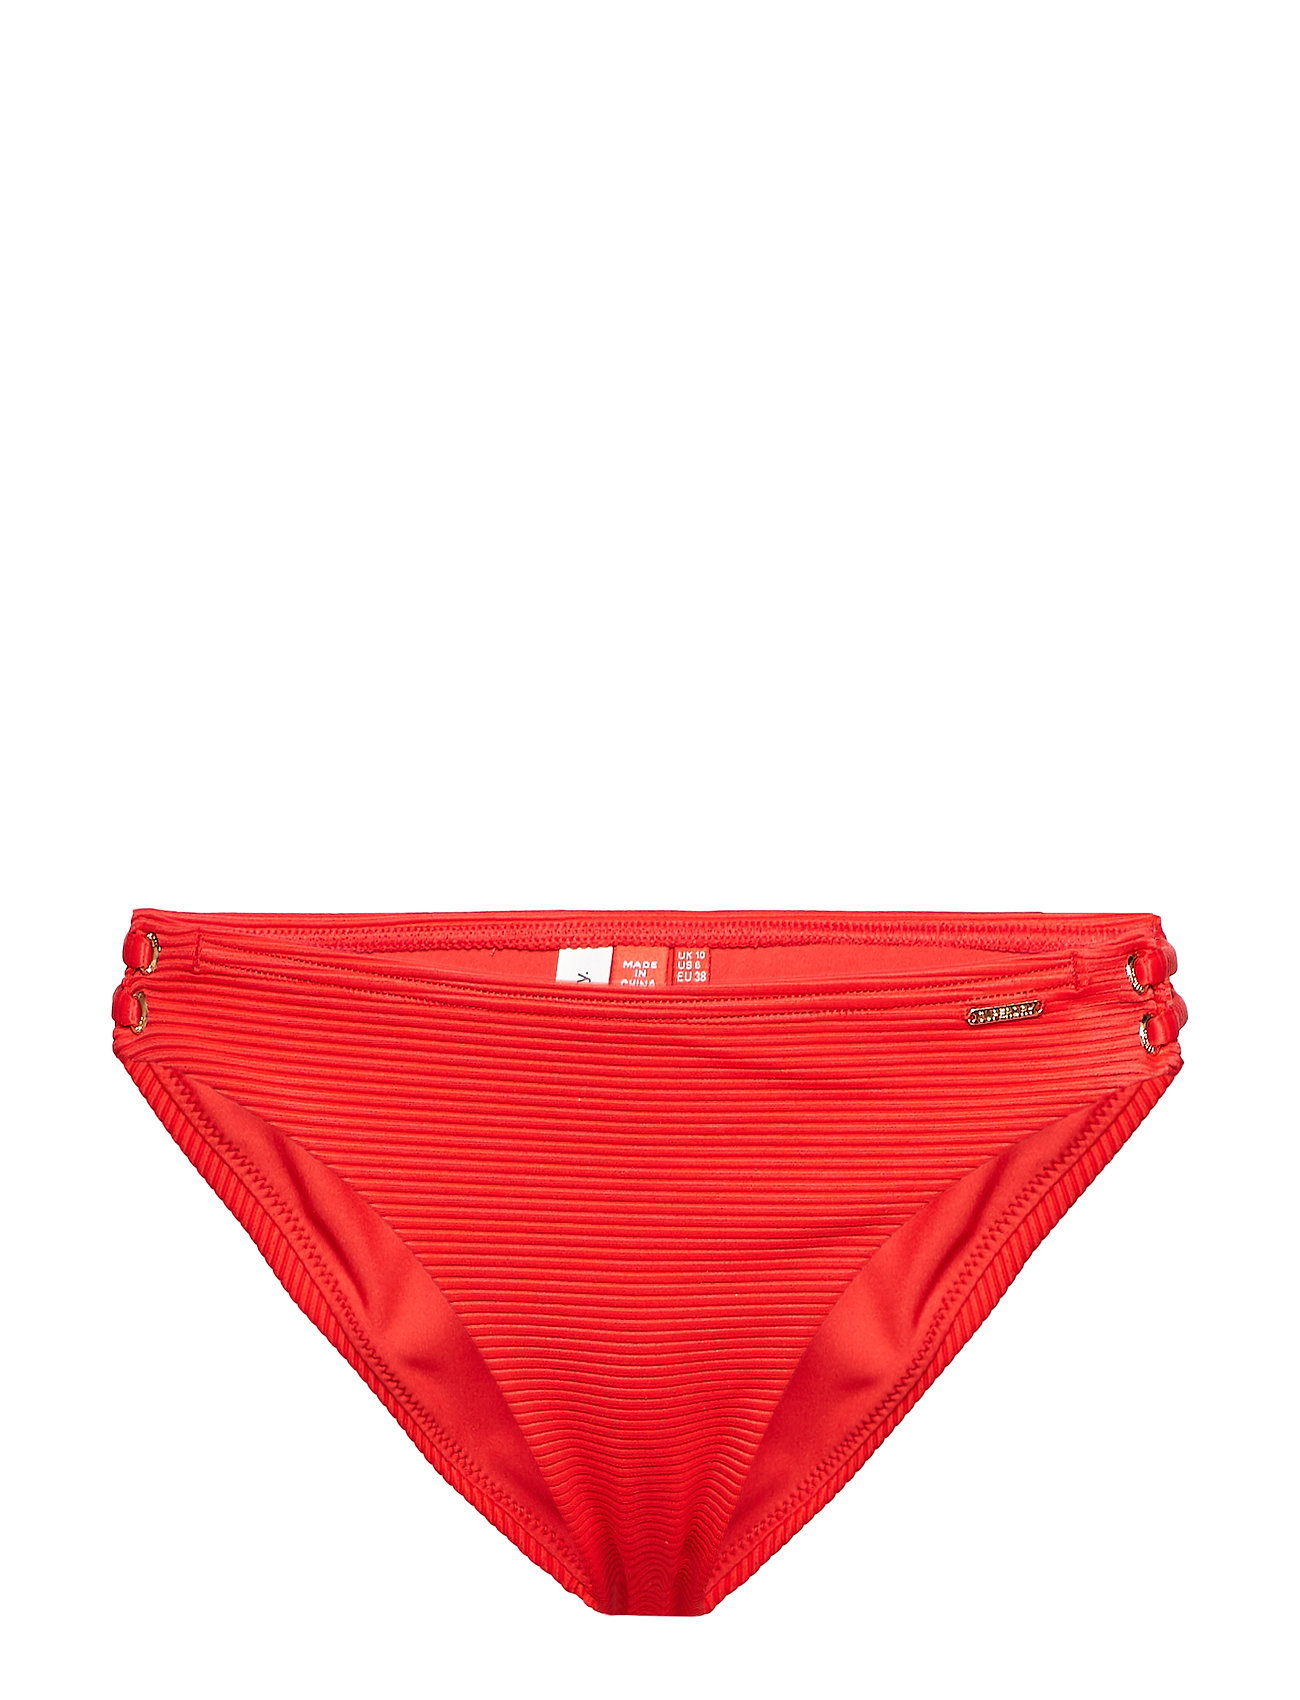 Superdry Sport ALICE TEXTURED CUPPED BIKINI BOTTOM - NAUTICAL RED